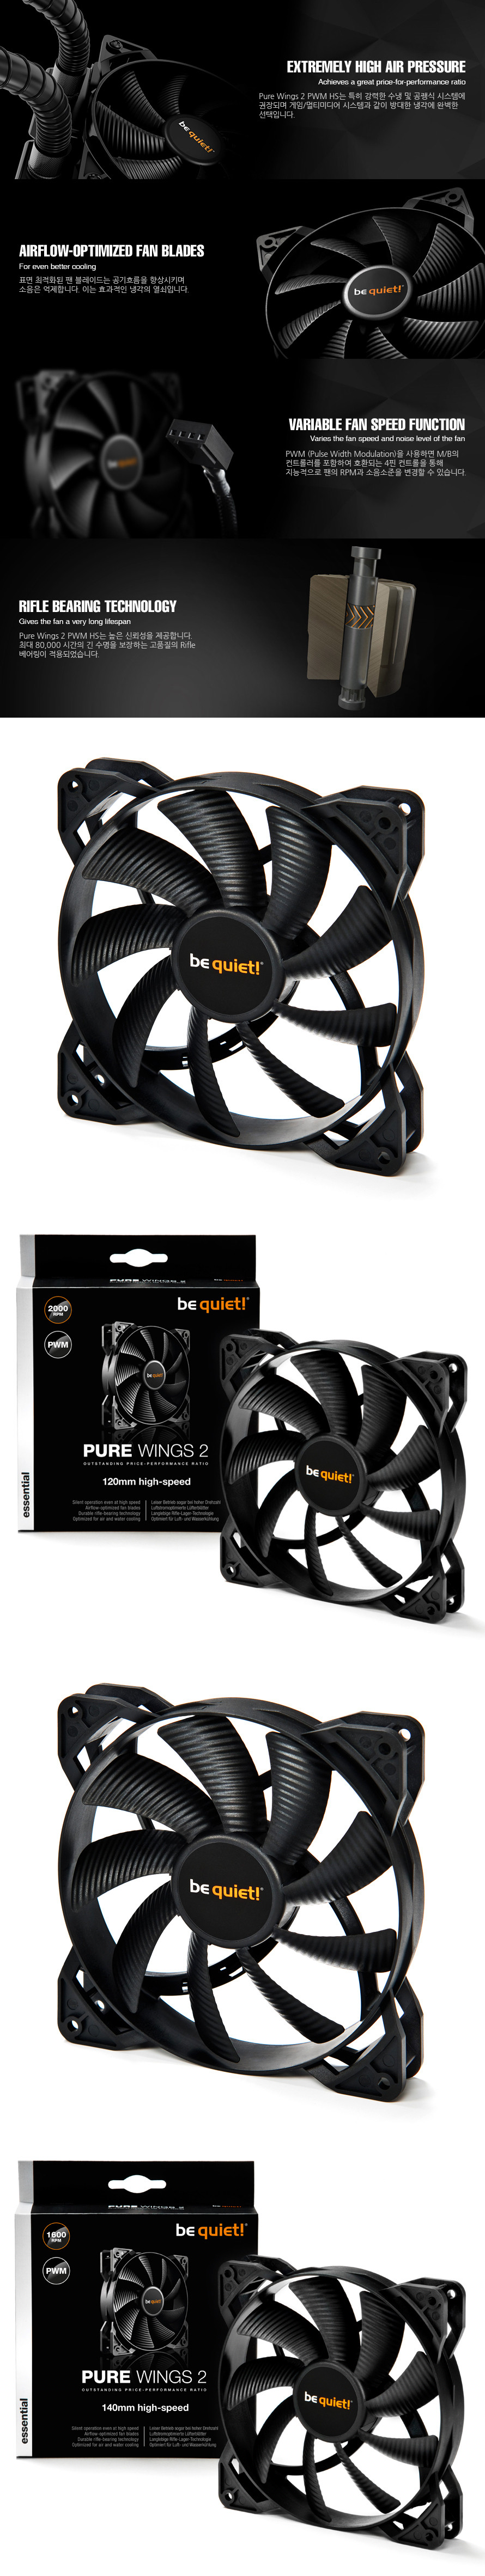 be quiet  PURE WINGS 2 PWM(140mm high-speed)